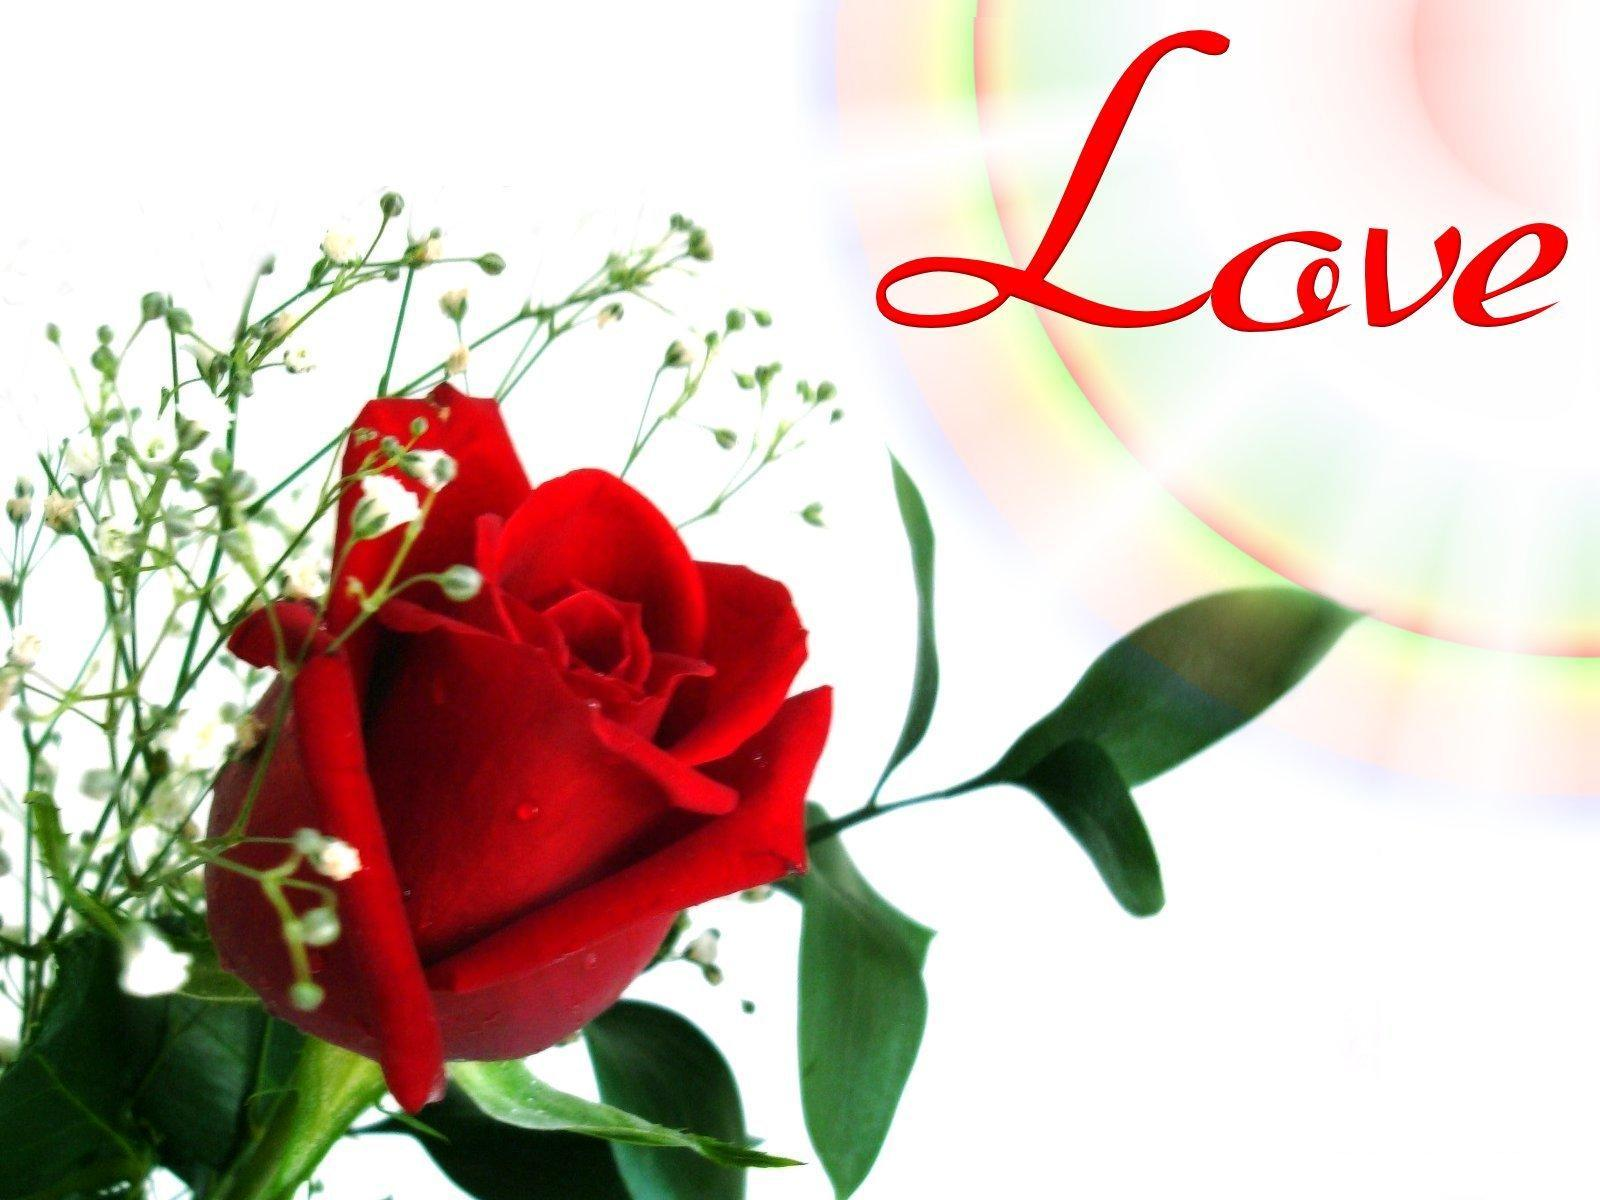 wallpapers flower rose love  wallpaper cave, Natural flower